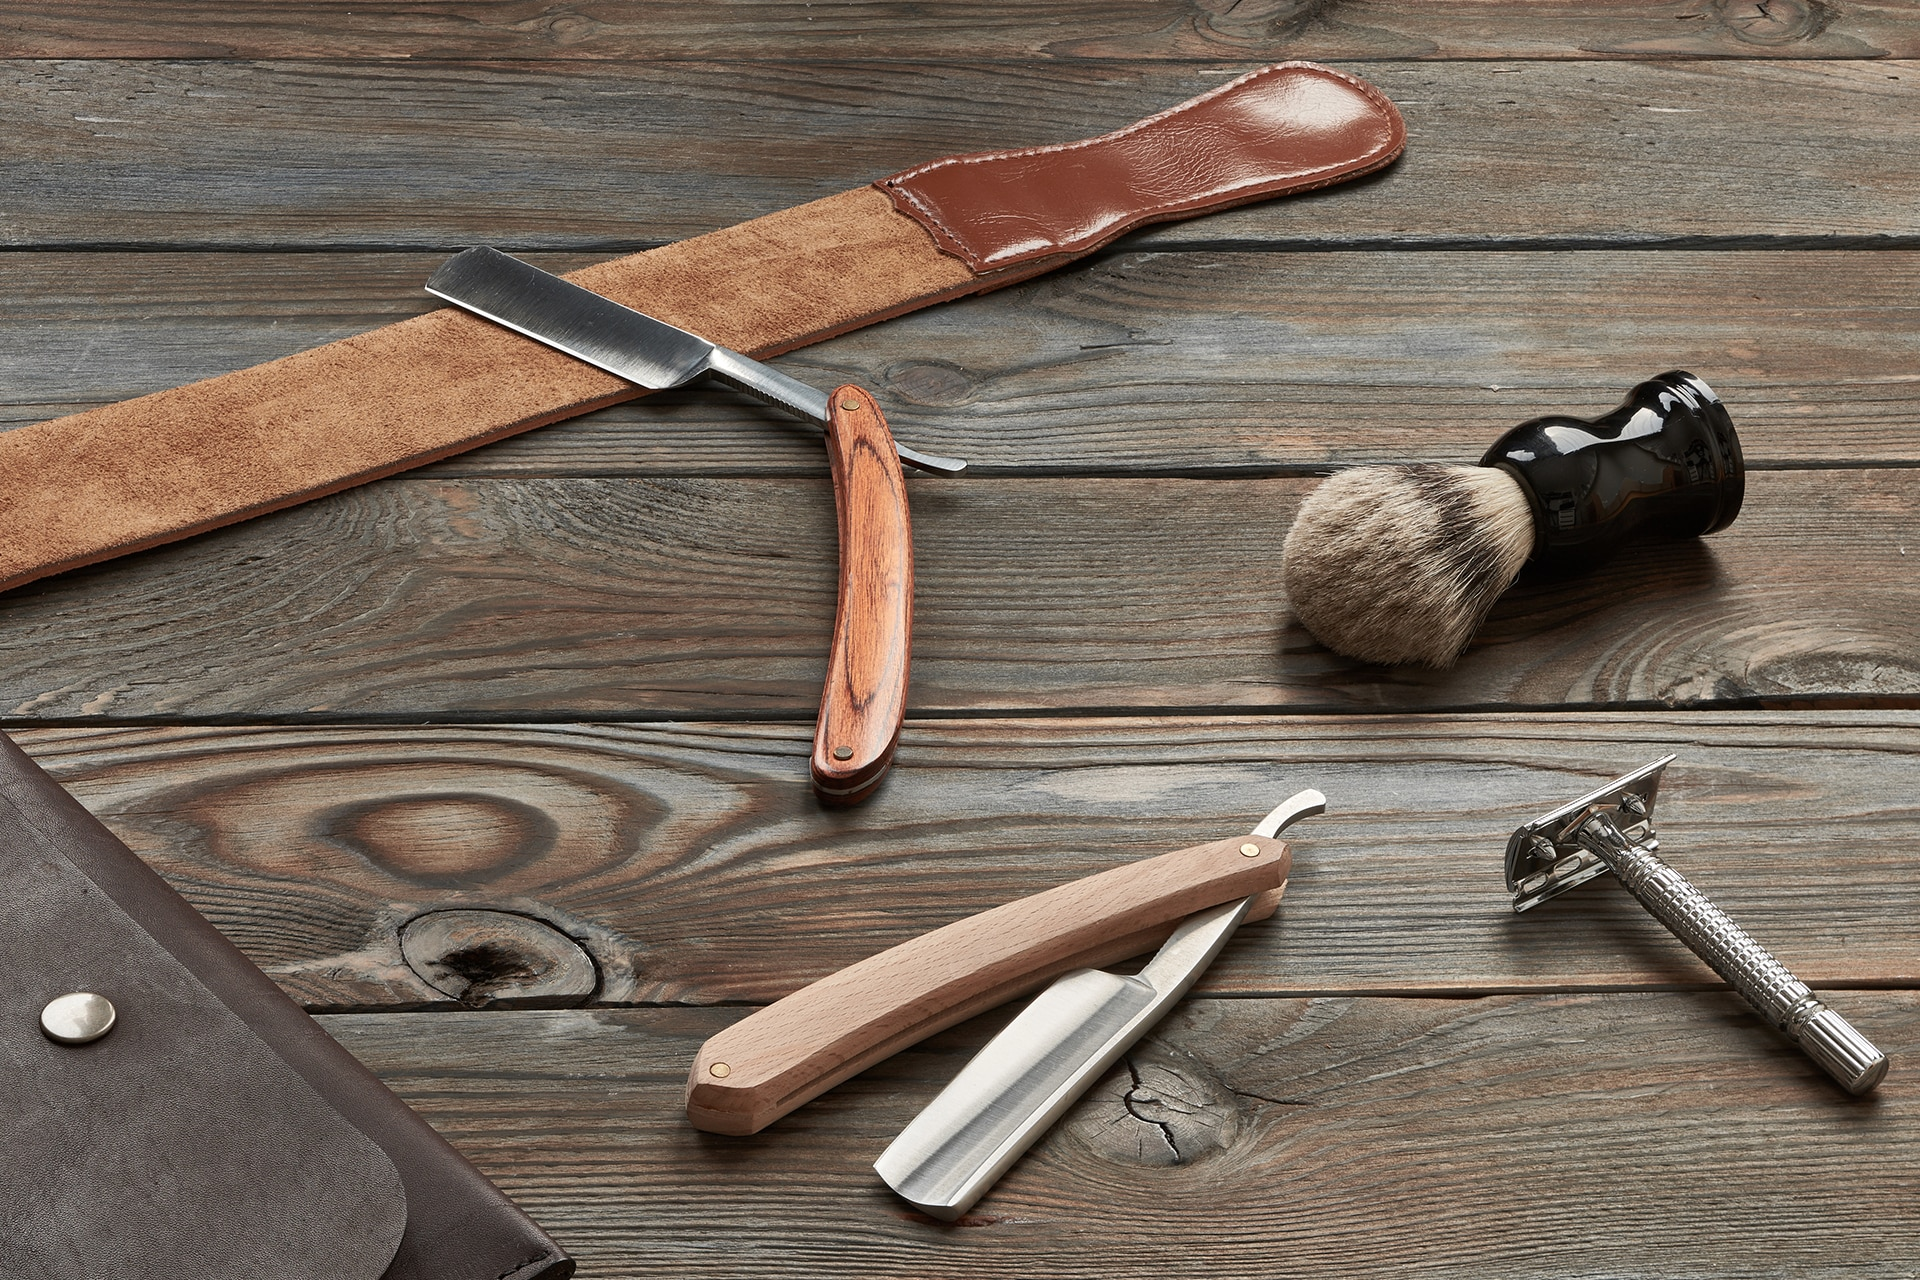 5 Green Brands That'll Up Your Grooming Game Without Costing The Earth